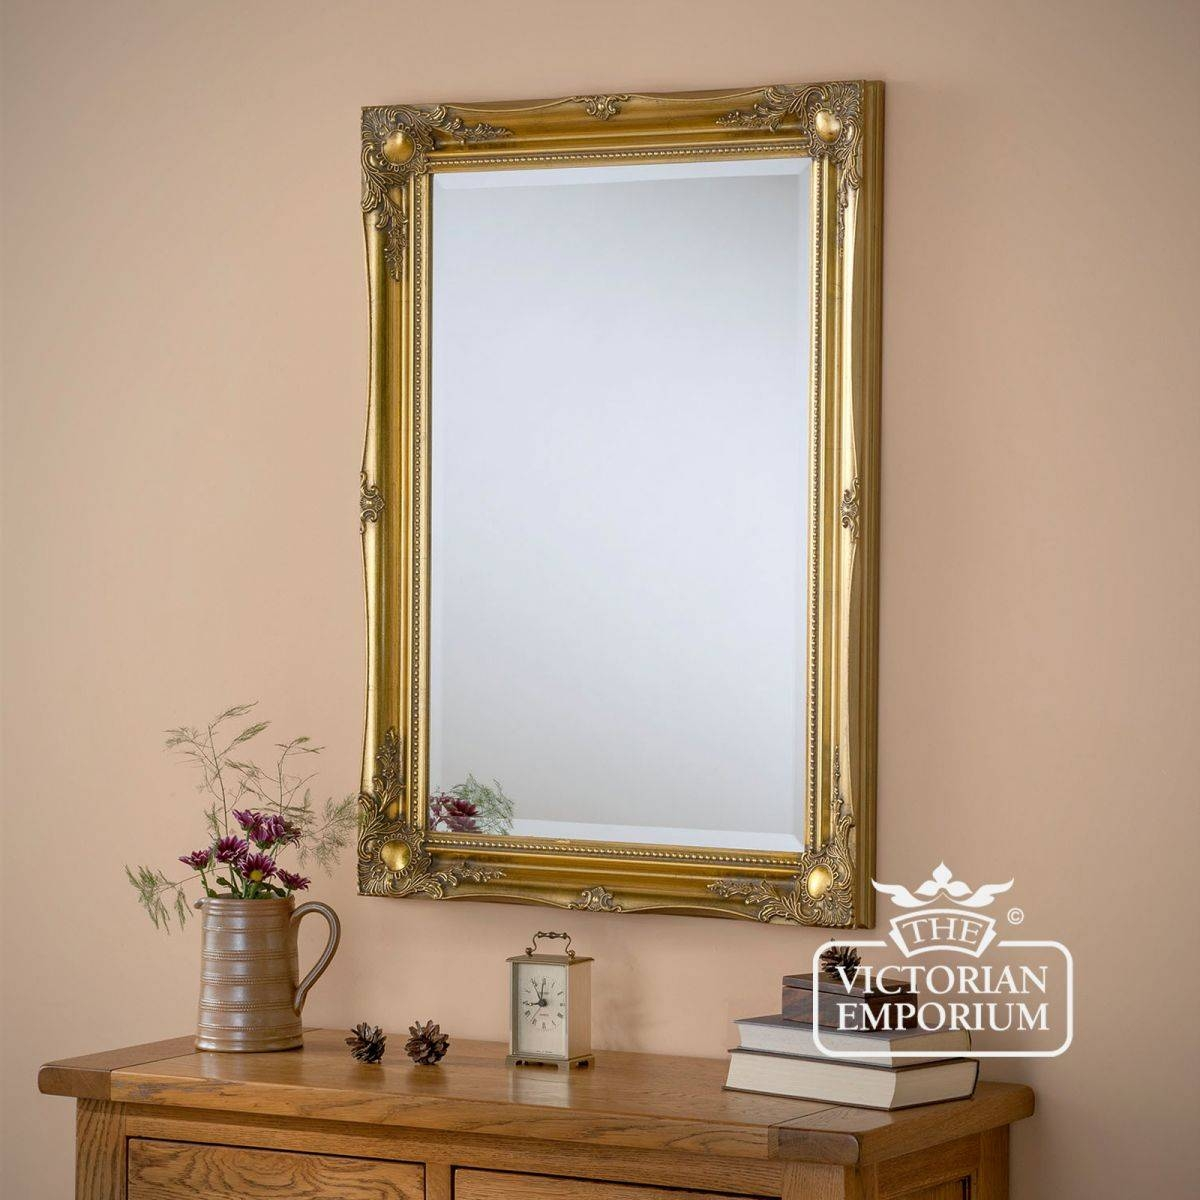 Newport Mirror 168Cm X 107Cm With Gold Frame | Mirrors Throughout Victorian Mirrors (Photo 13 of 15)